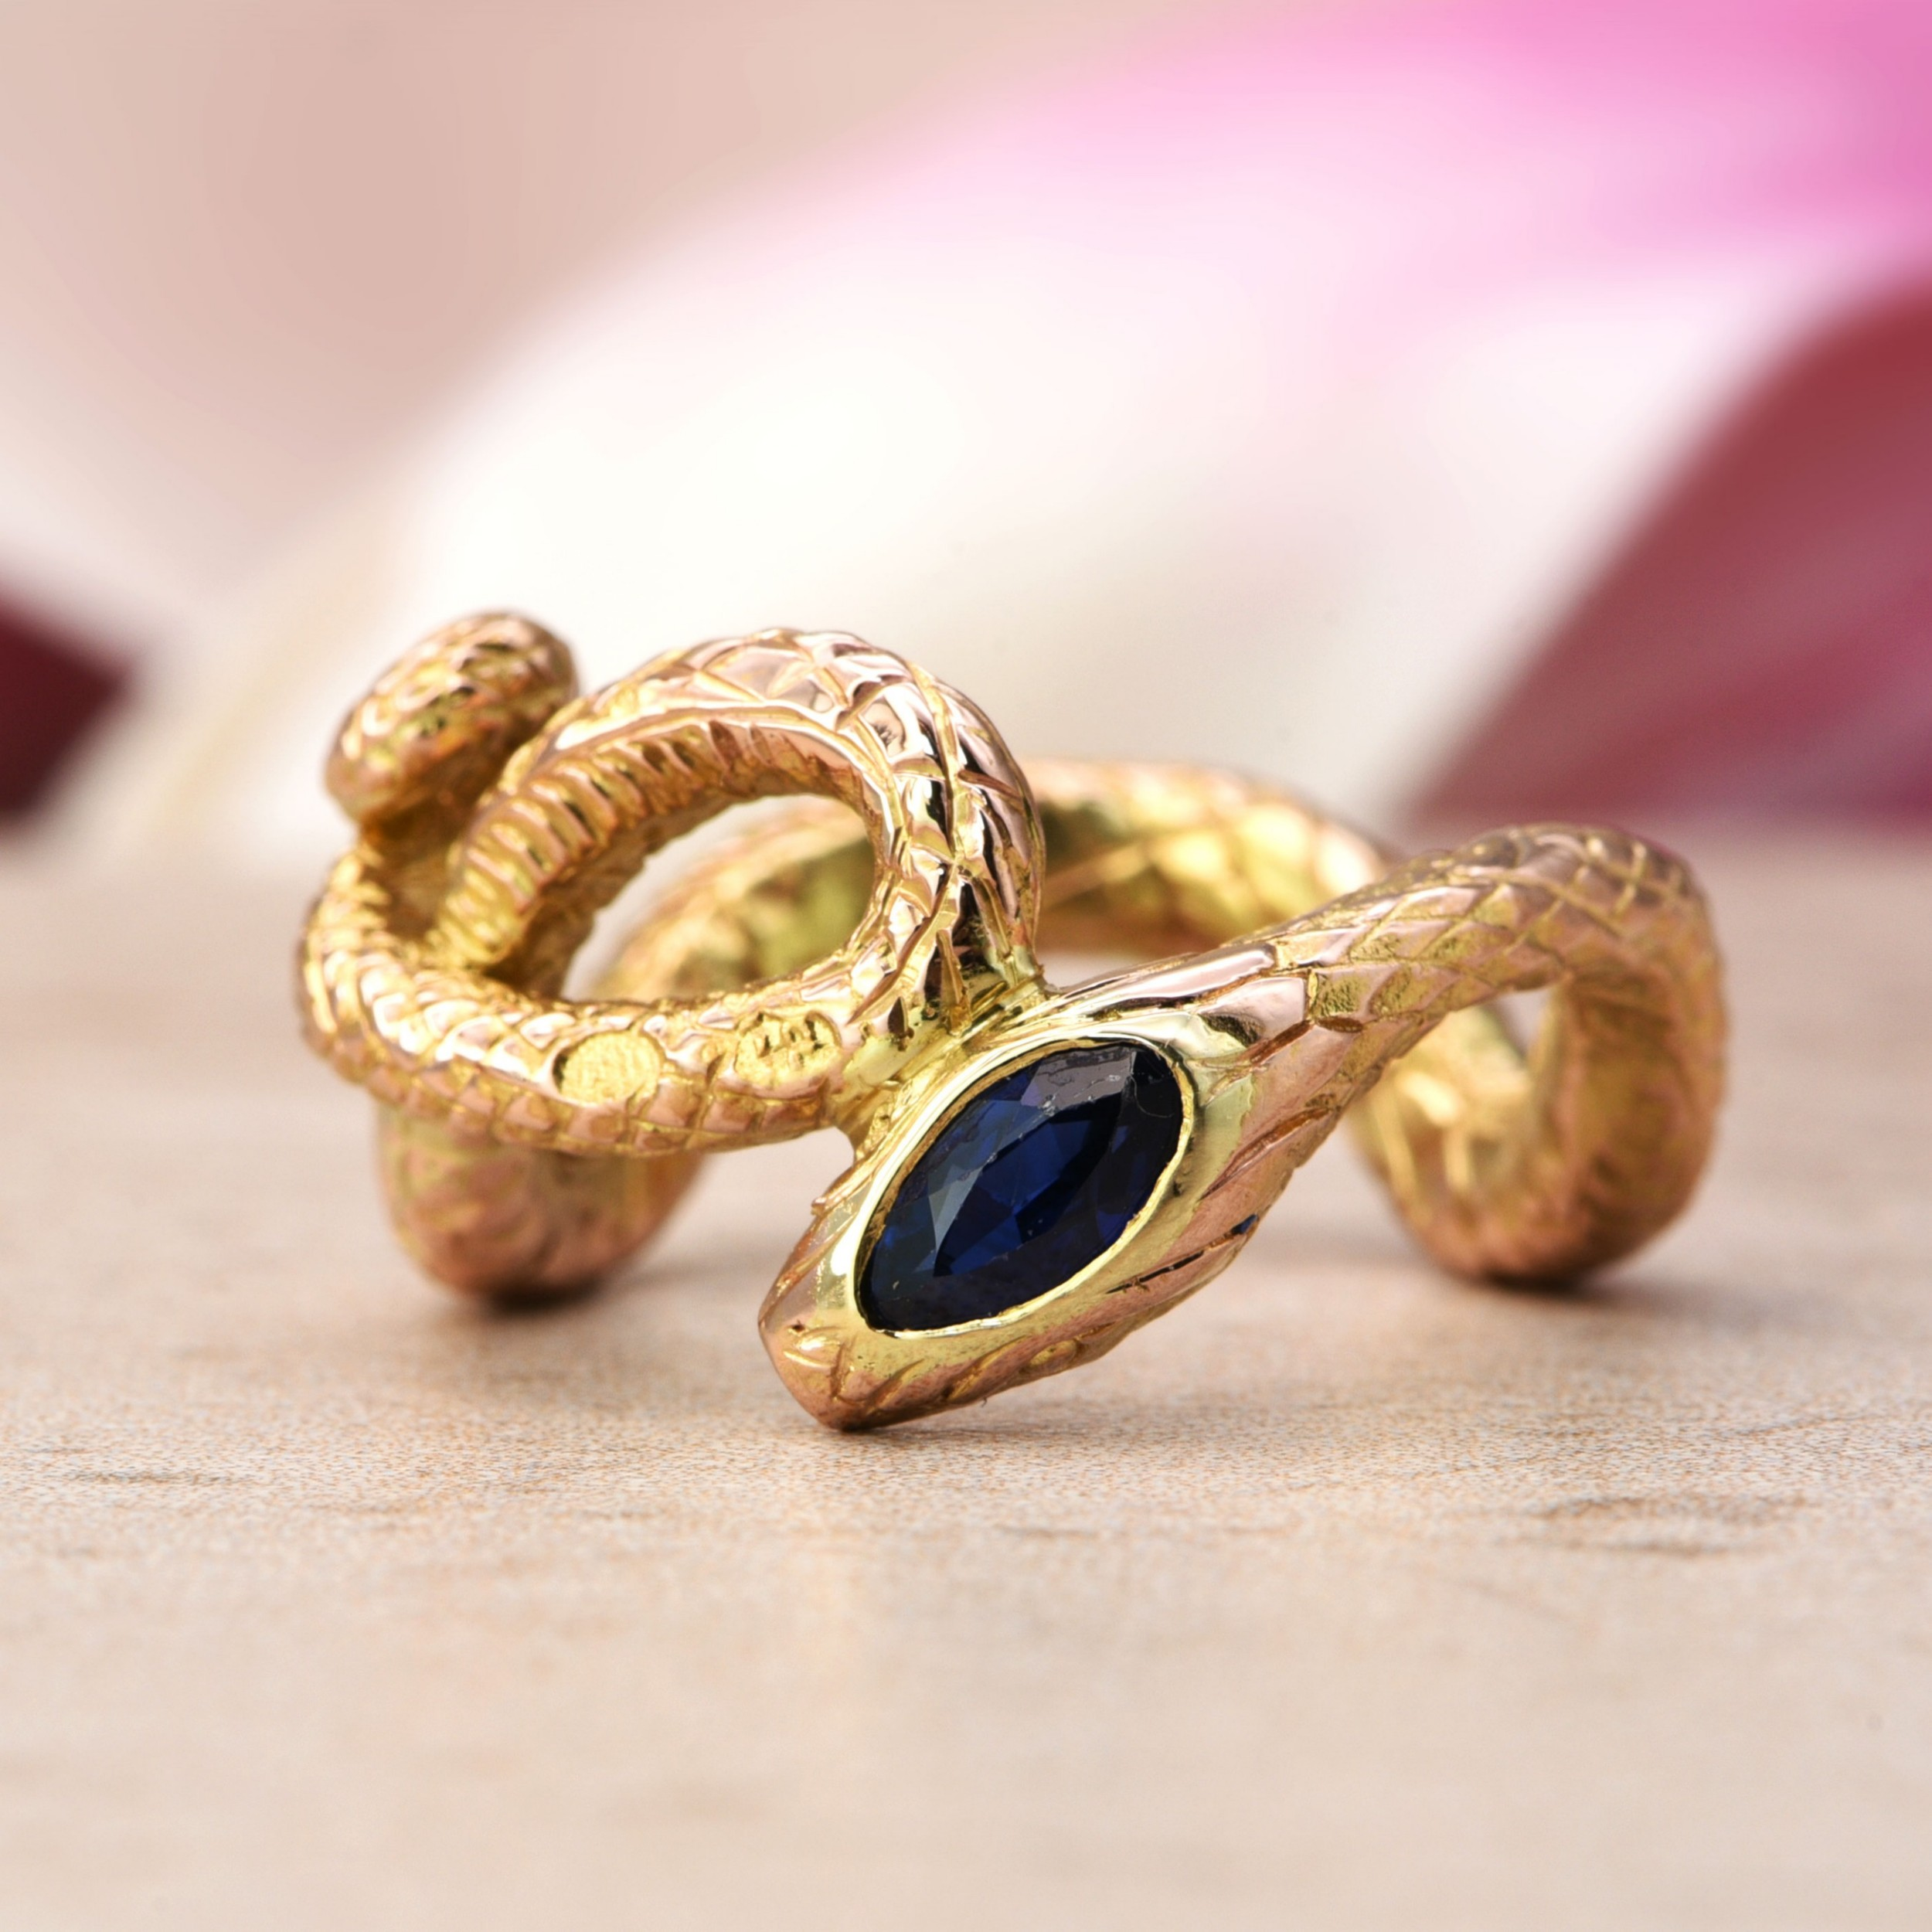 the antique russian coiled sapphire snake ring